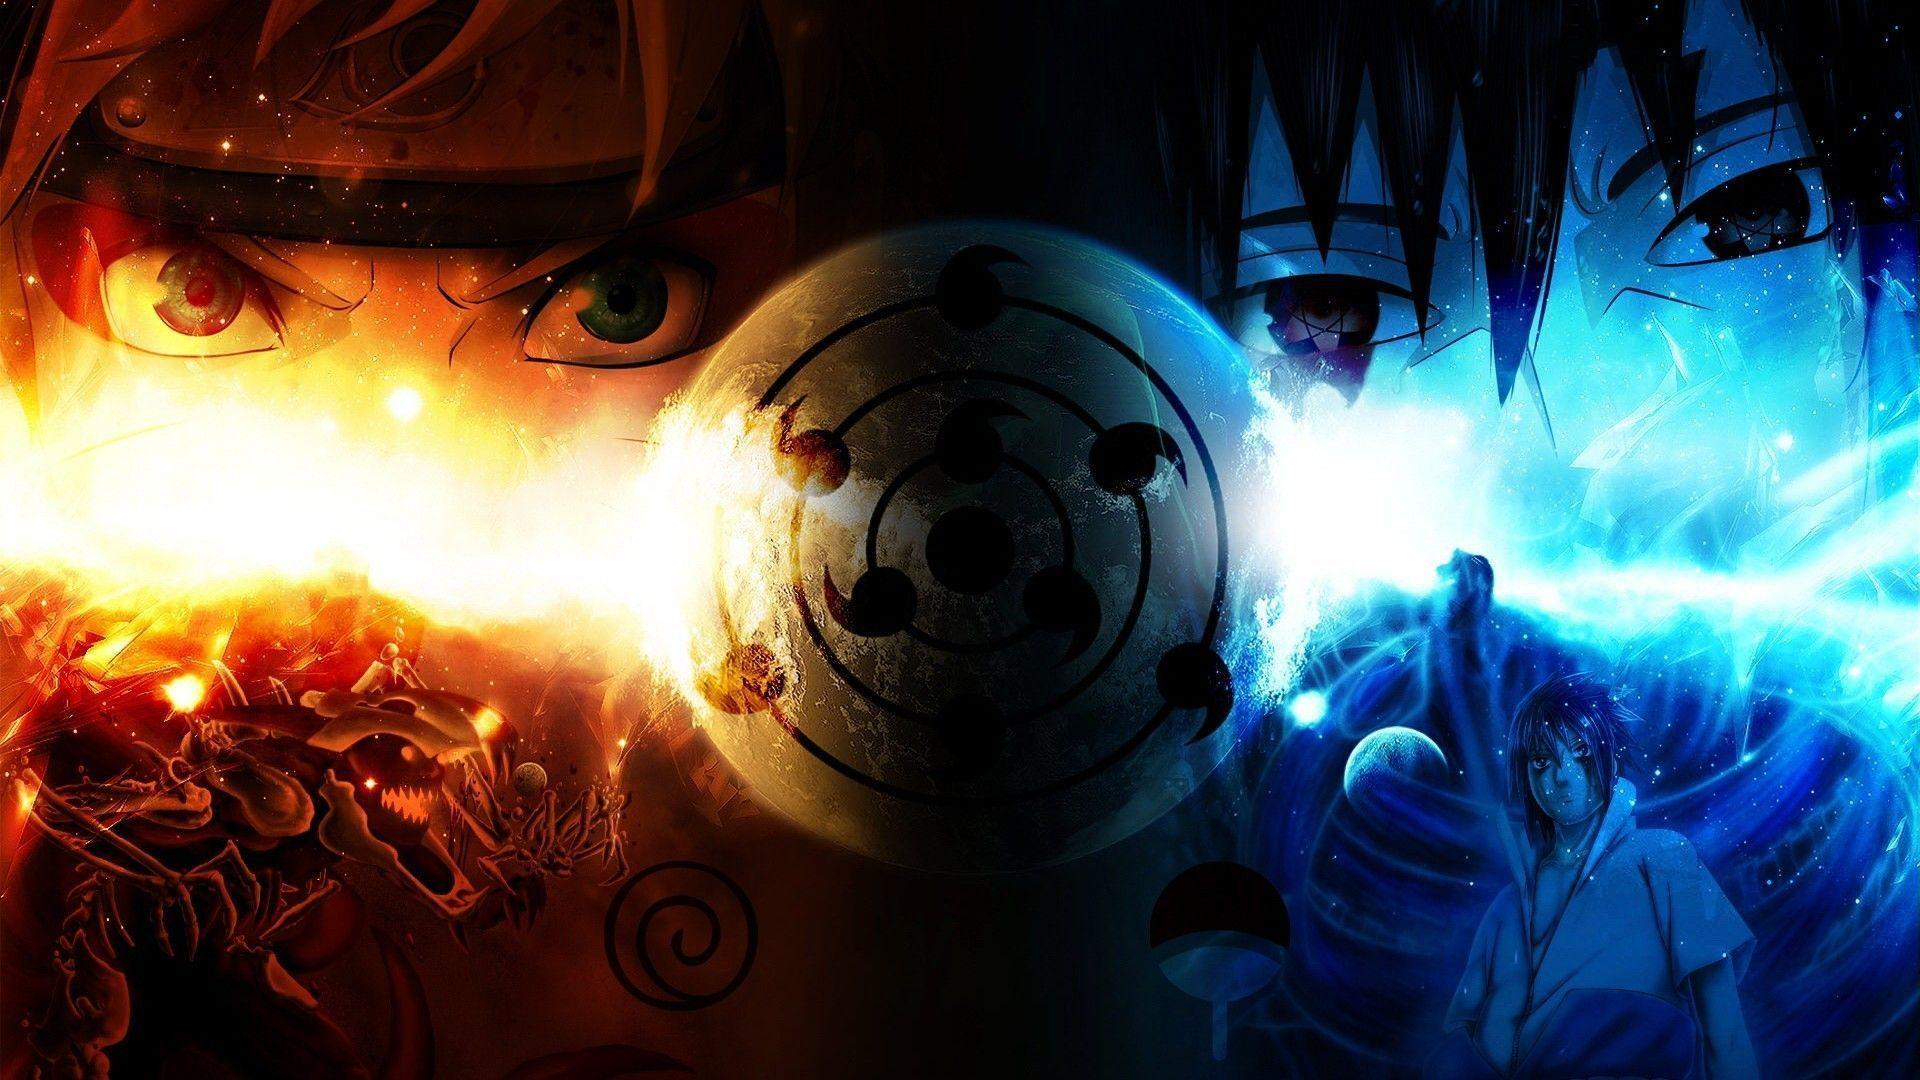 1920x1080 Naruto And Sasuke Wallpapers Hi Res W Wallpapers